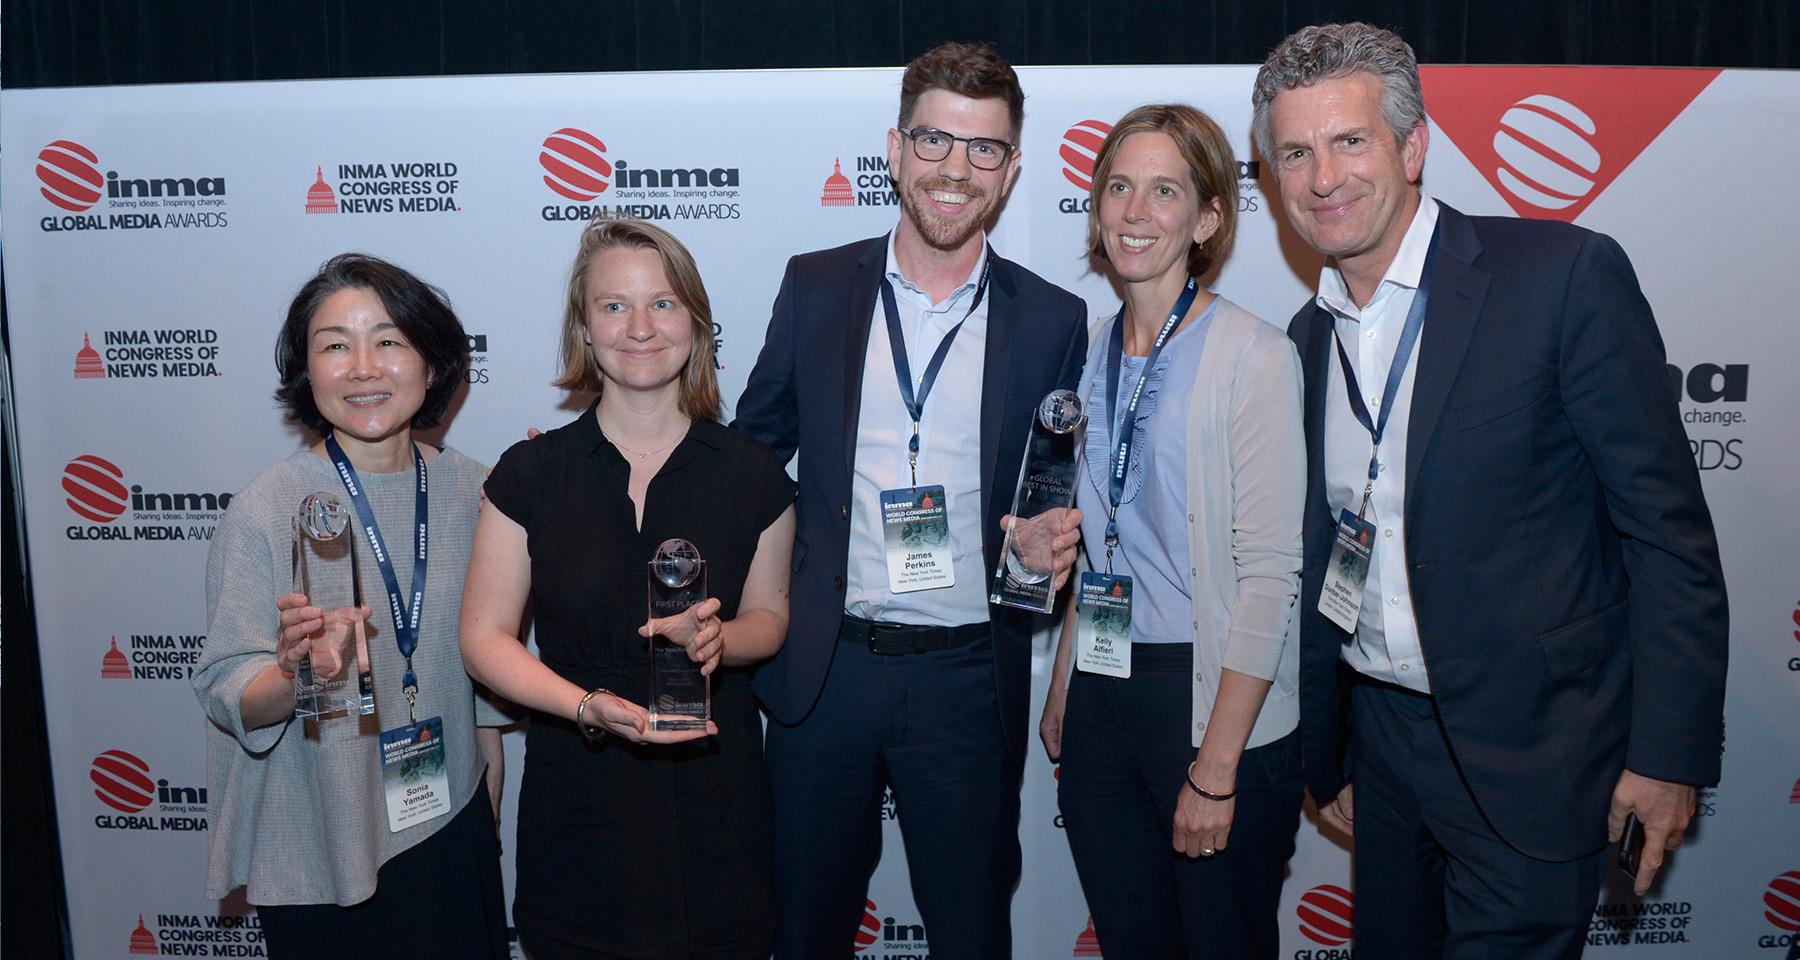 40 INMA Global Media Awards winners announced, Svenska Dagbladet takes top  prize